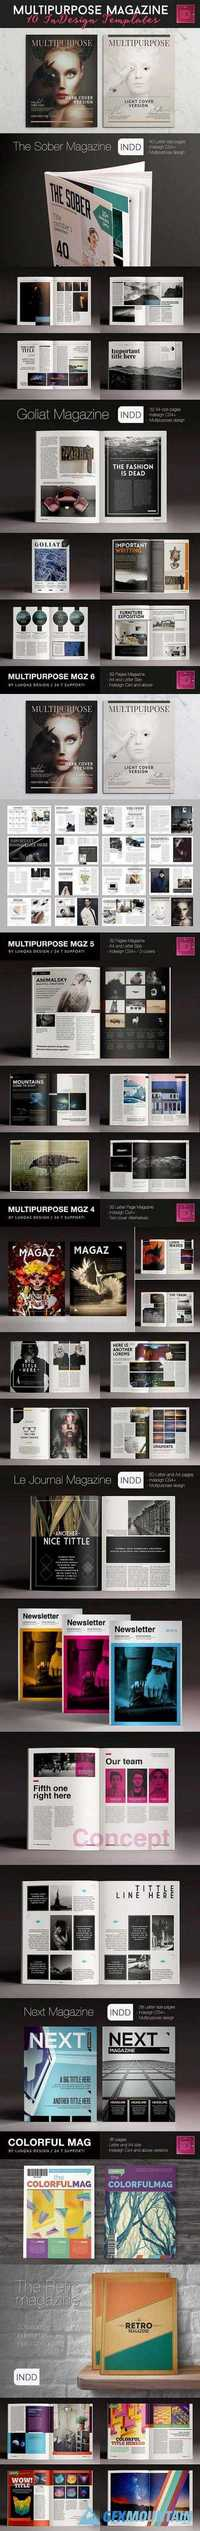 10 Magazine Brochure Templates Pack 787245